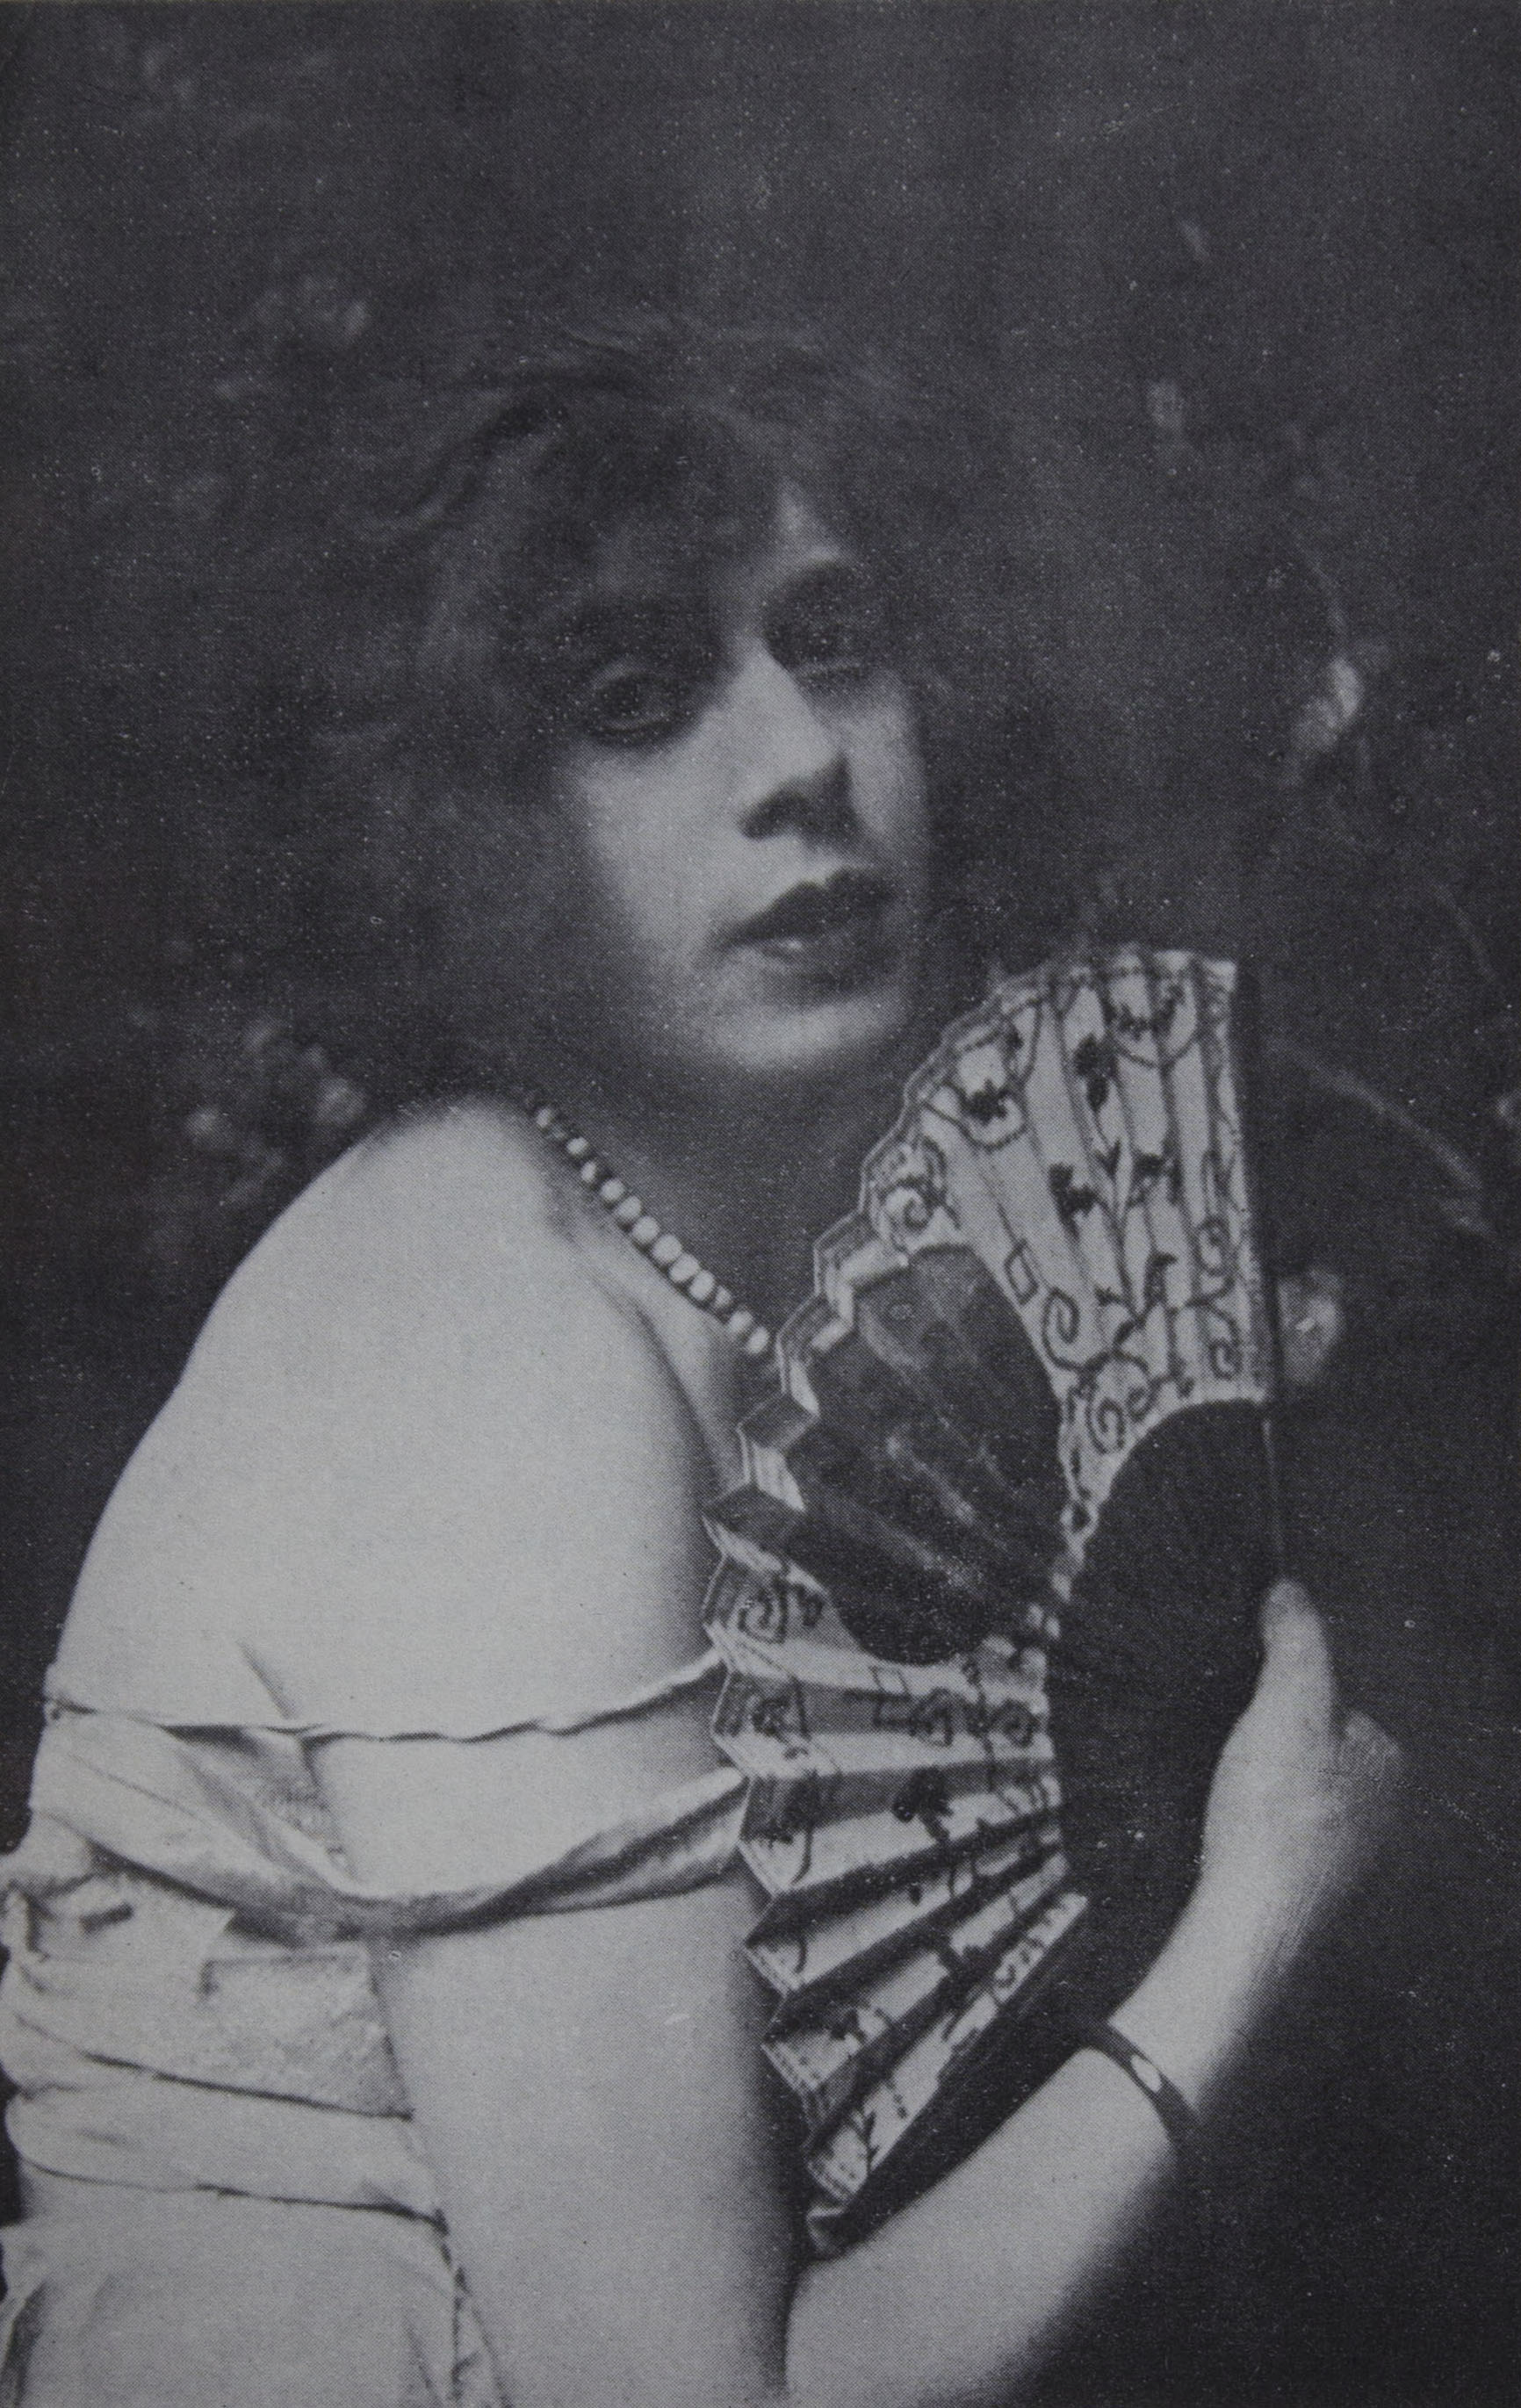 EINAR WEGENER (ANDREAS SPARRE) POSING AS LILI, PARIS,                         1926